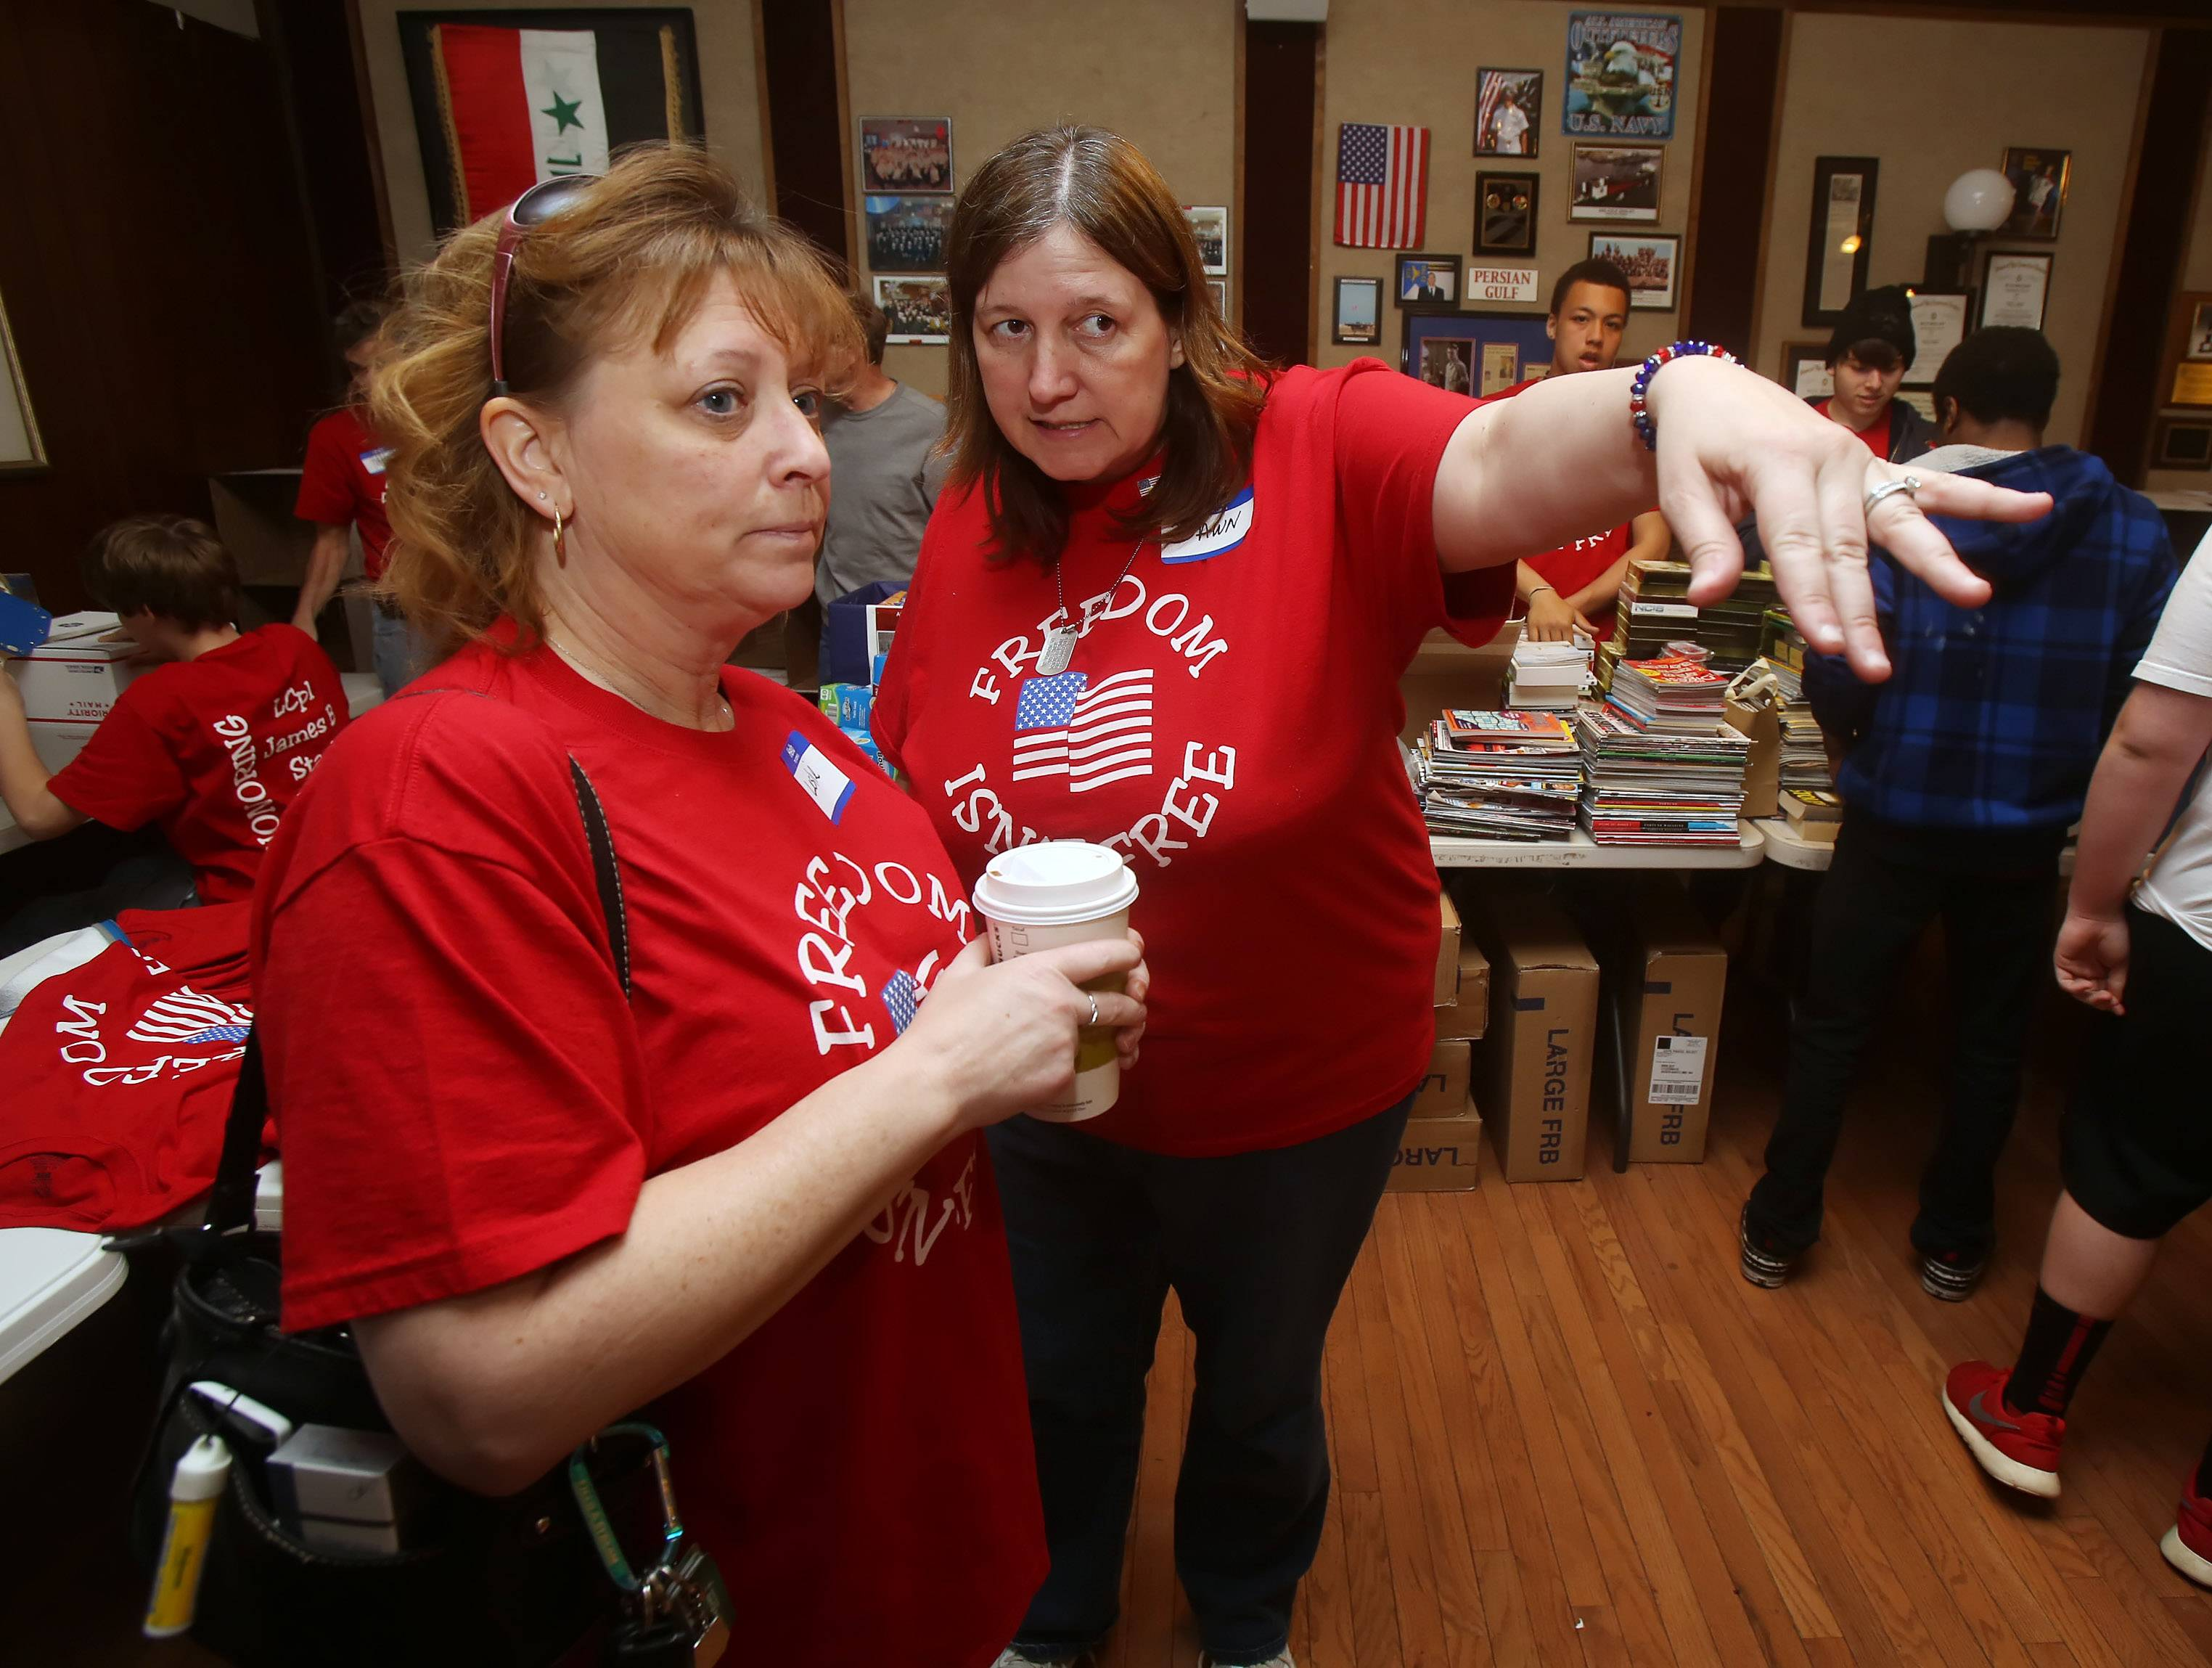 Dawn Hedrick, right, directs Leslie Anderson where help is needed as family and friends of fallen Arlington Heights Marine James Stack pack boxes of donations at the Arlington Heights American Legion Hall. The donations will be sent to troops in Afghanistan.